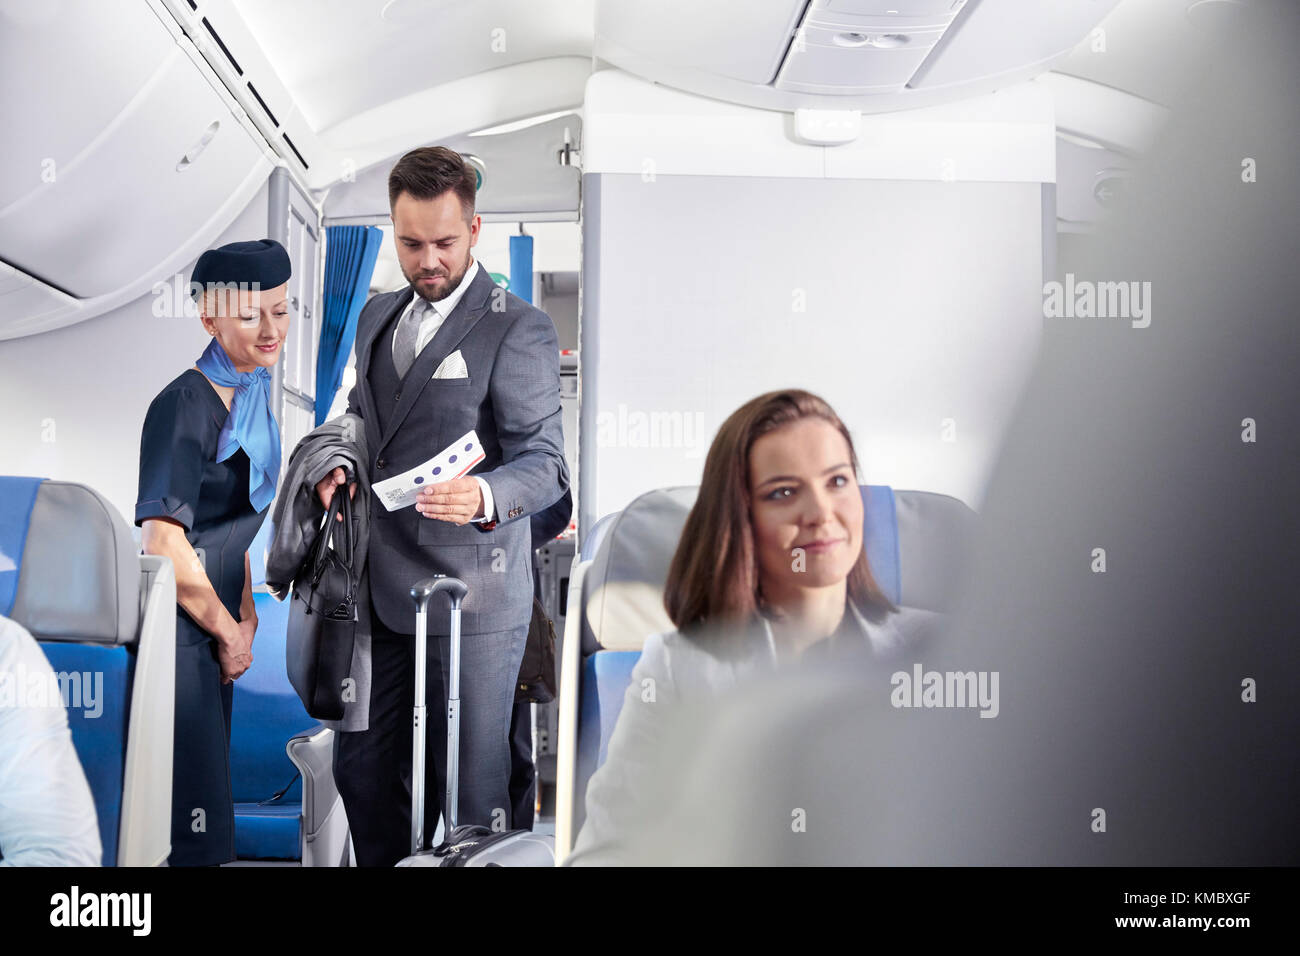 Air hostess helps out 4